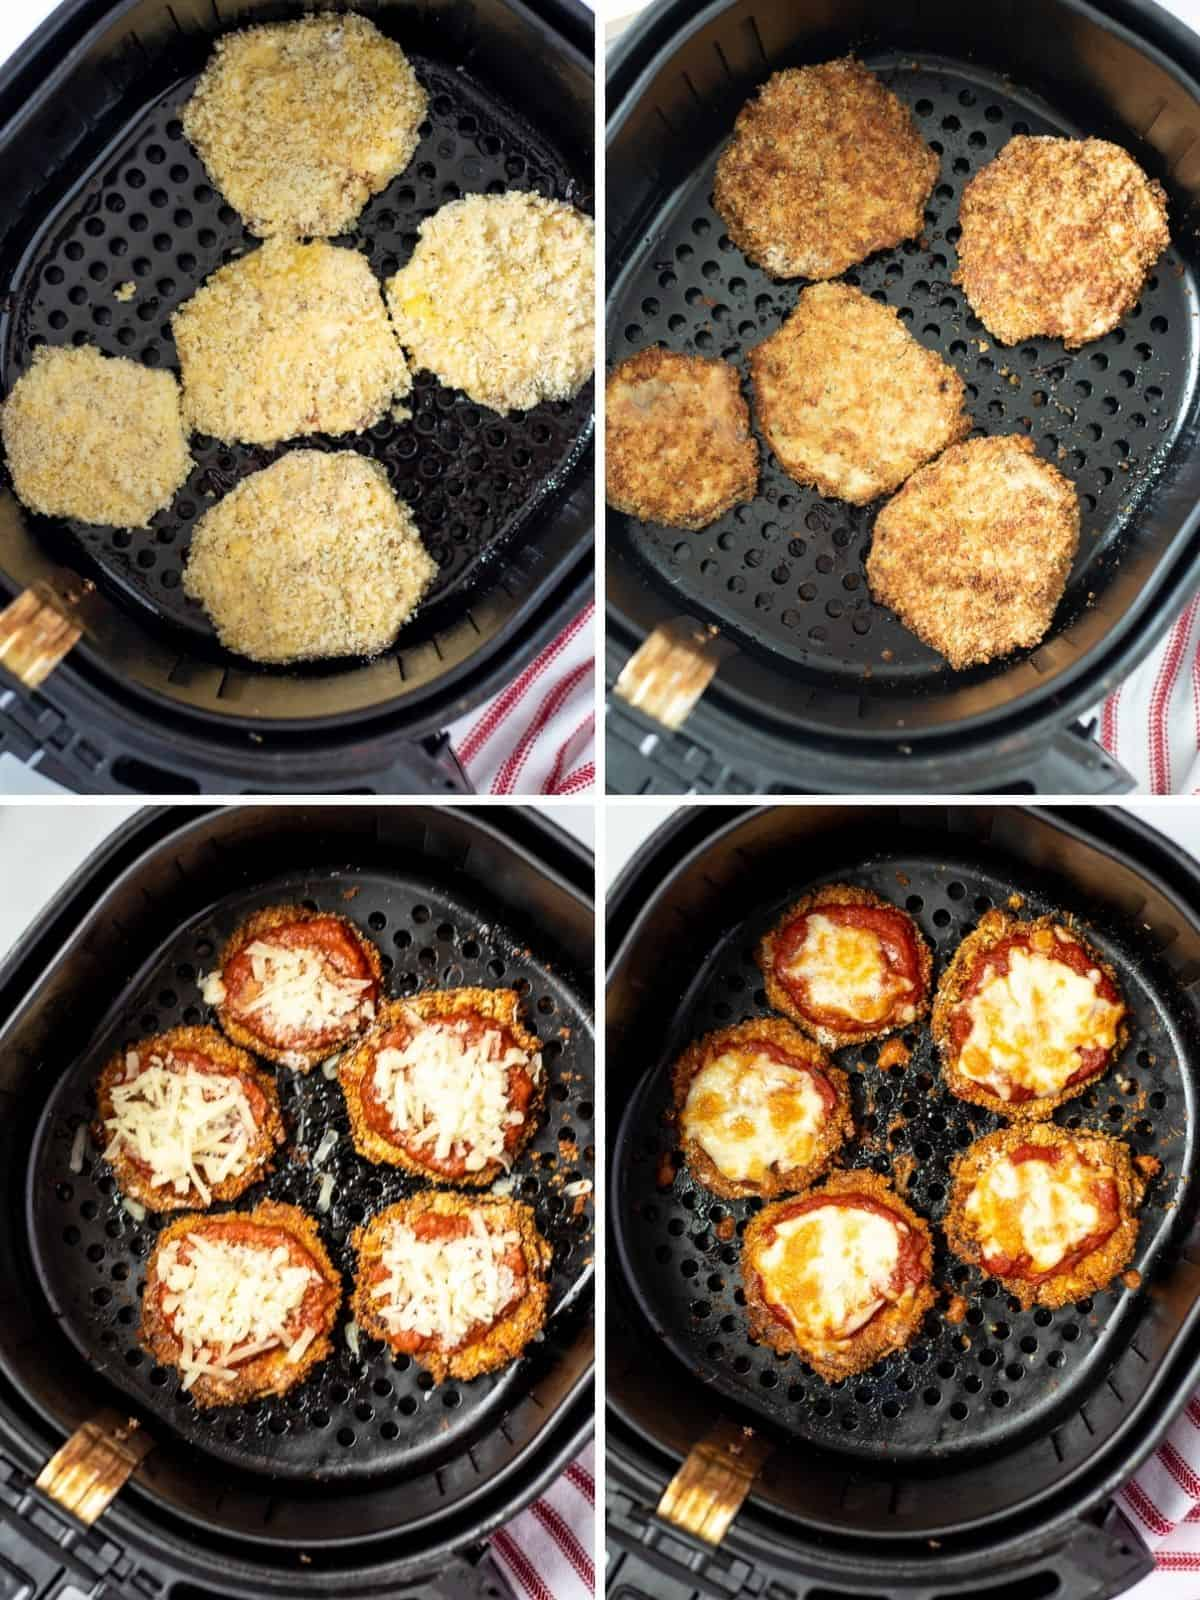 Collage of 4 pictures showing steps of air frying eggplant.